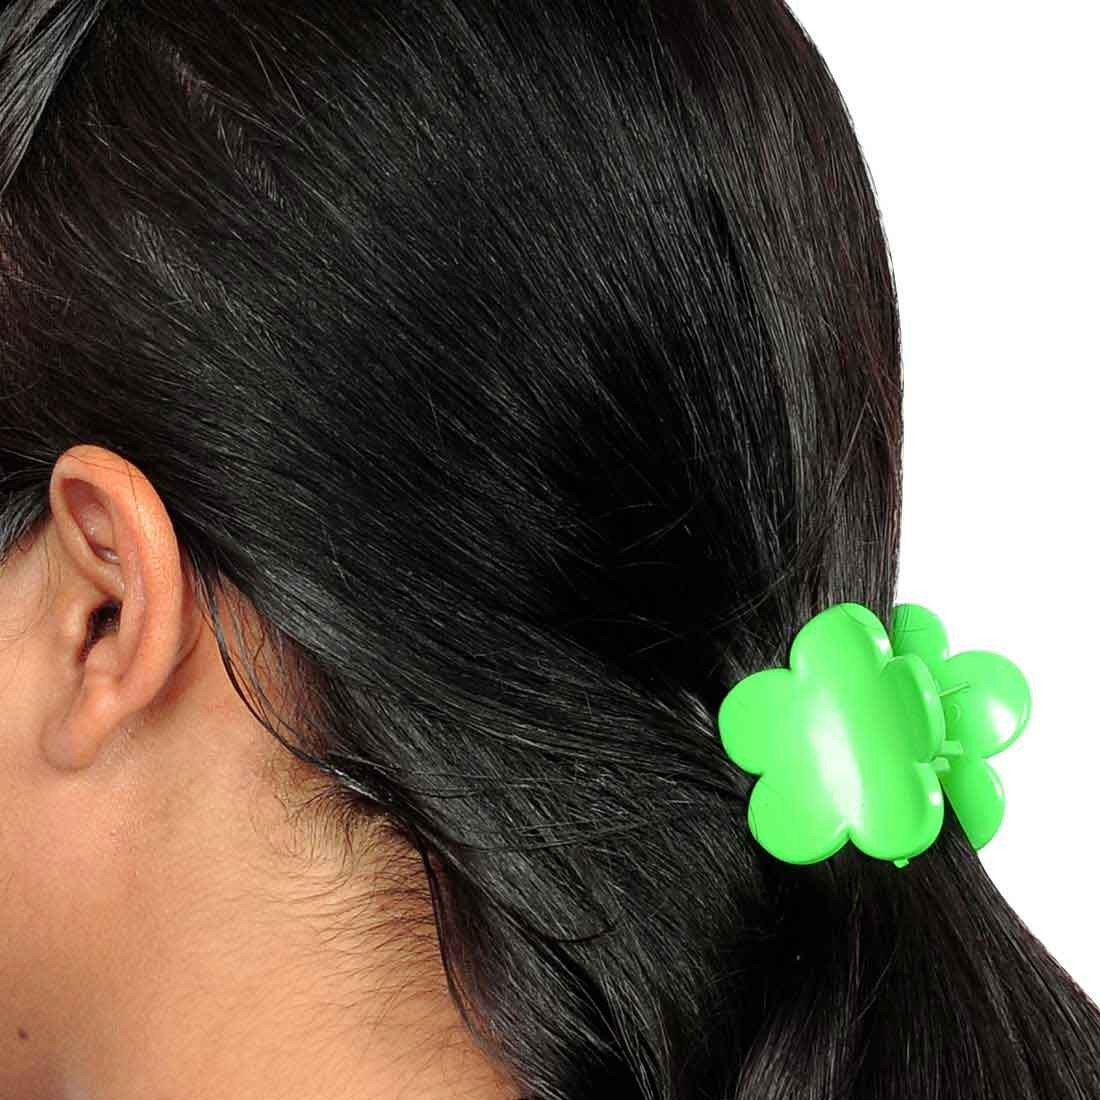 Bright Designer Hair Clutcher in Green for Party by Maayra